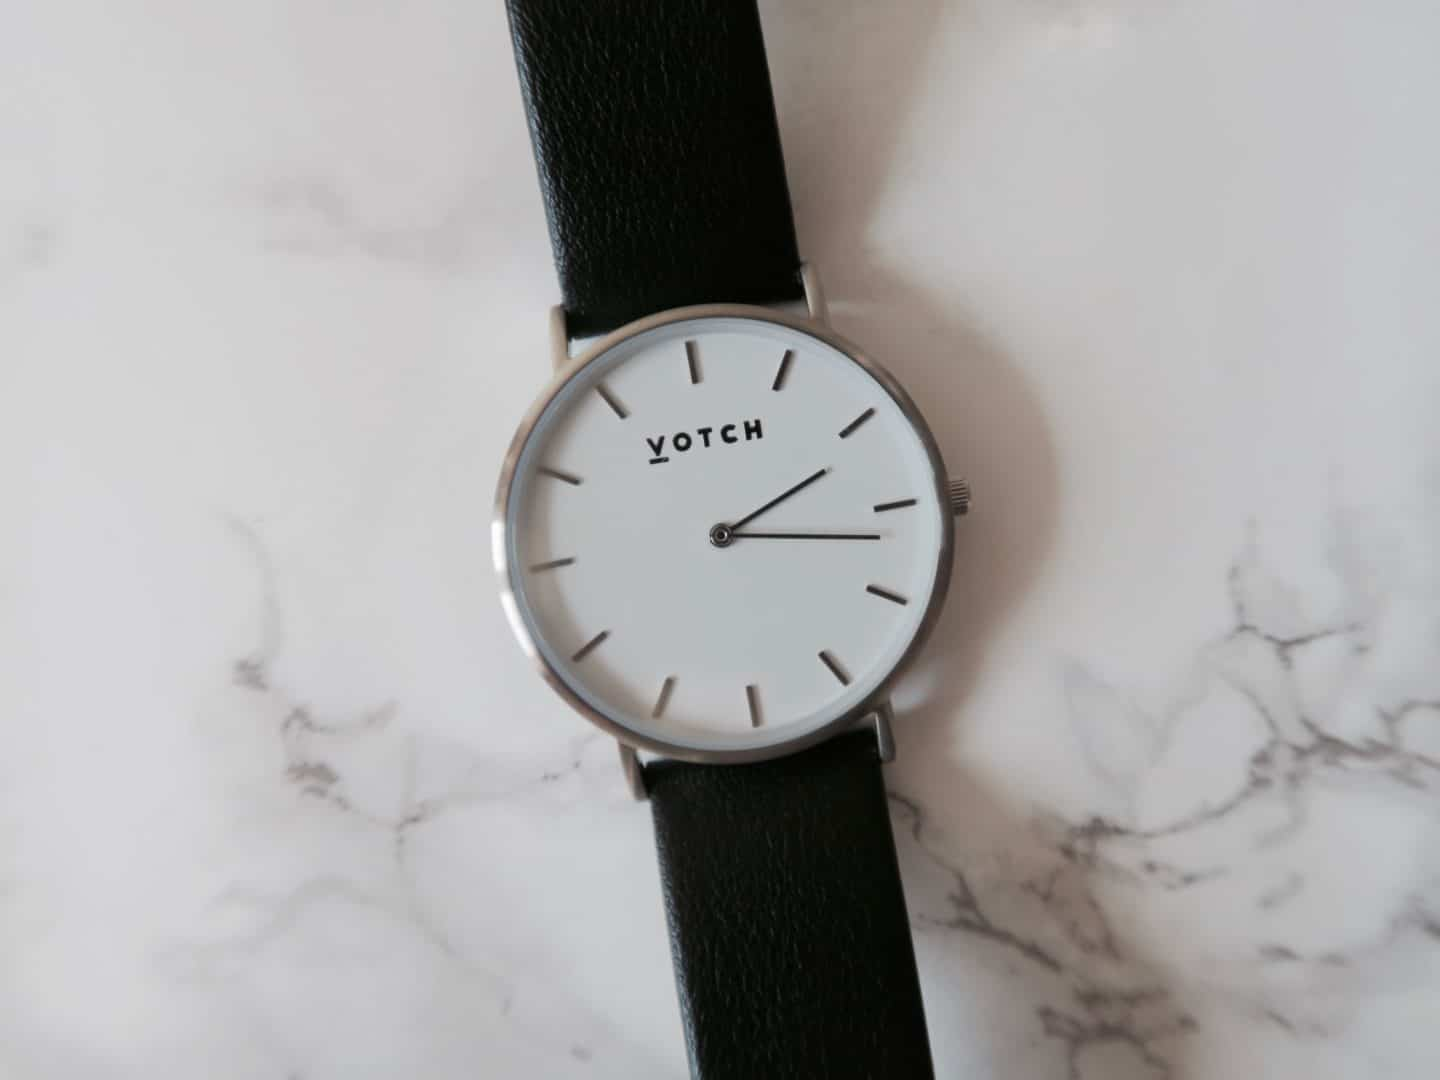 Votch Vegan Leather Watch | Curiously Conscious